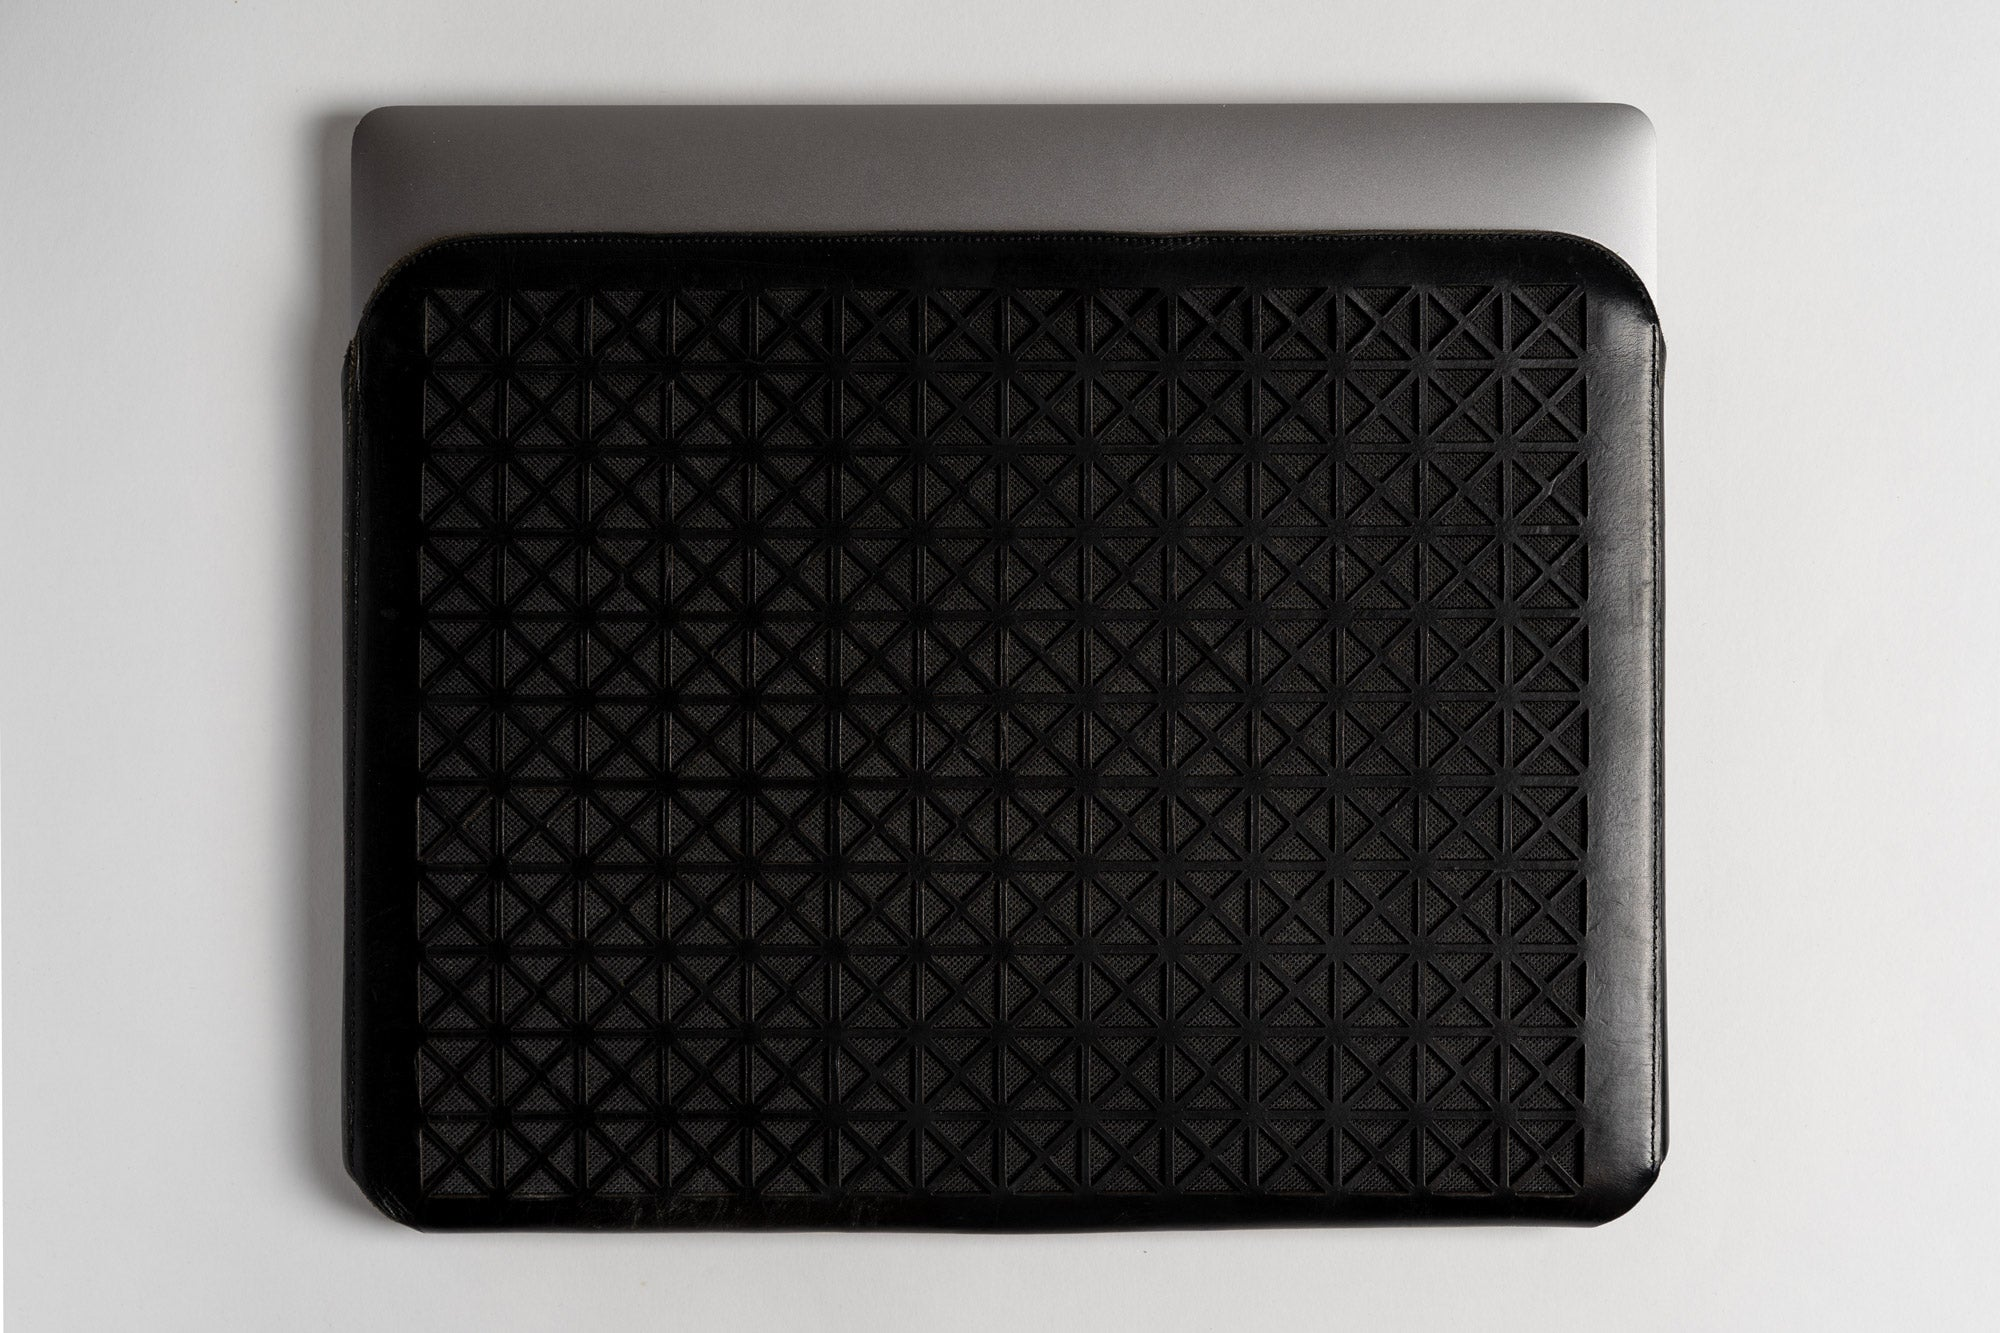 MacBook Pro Sleeve by OCULT